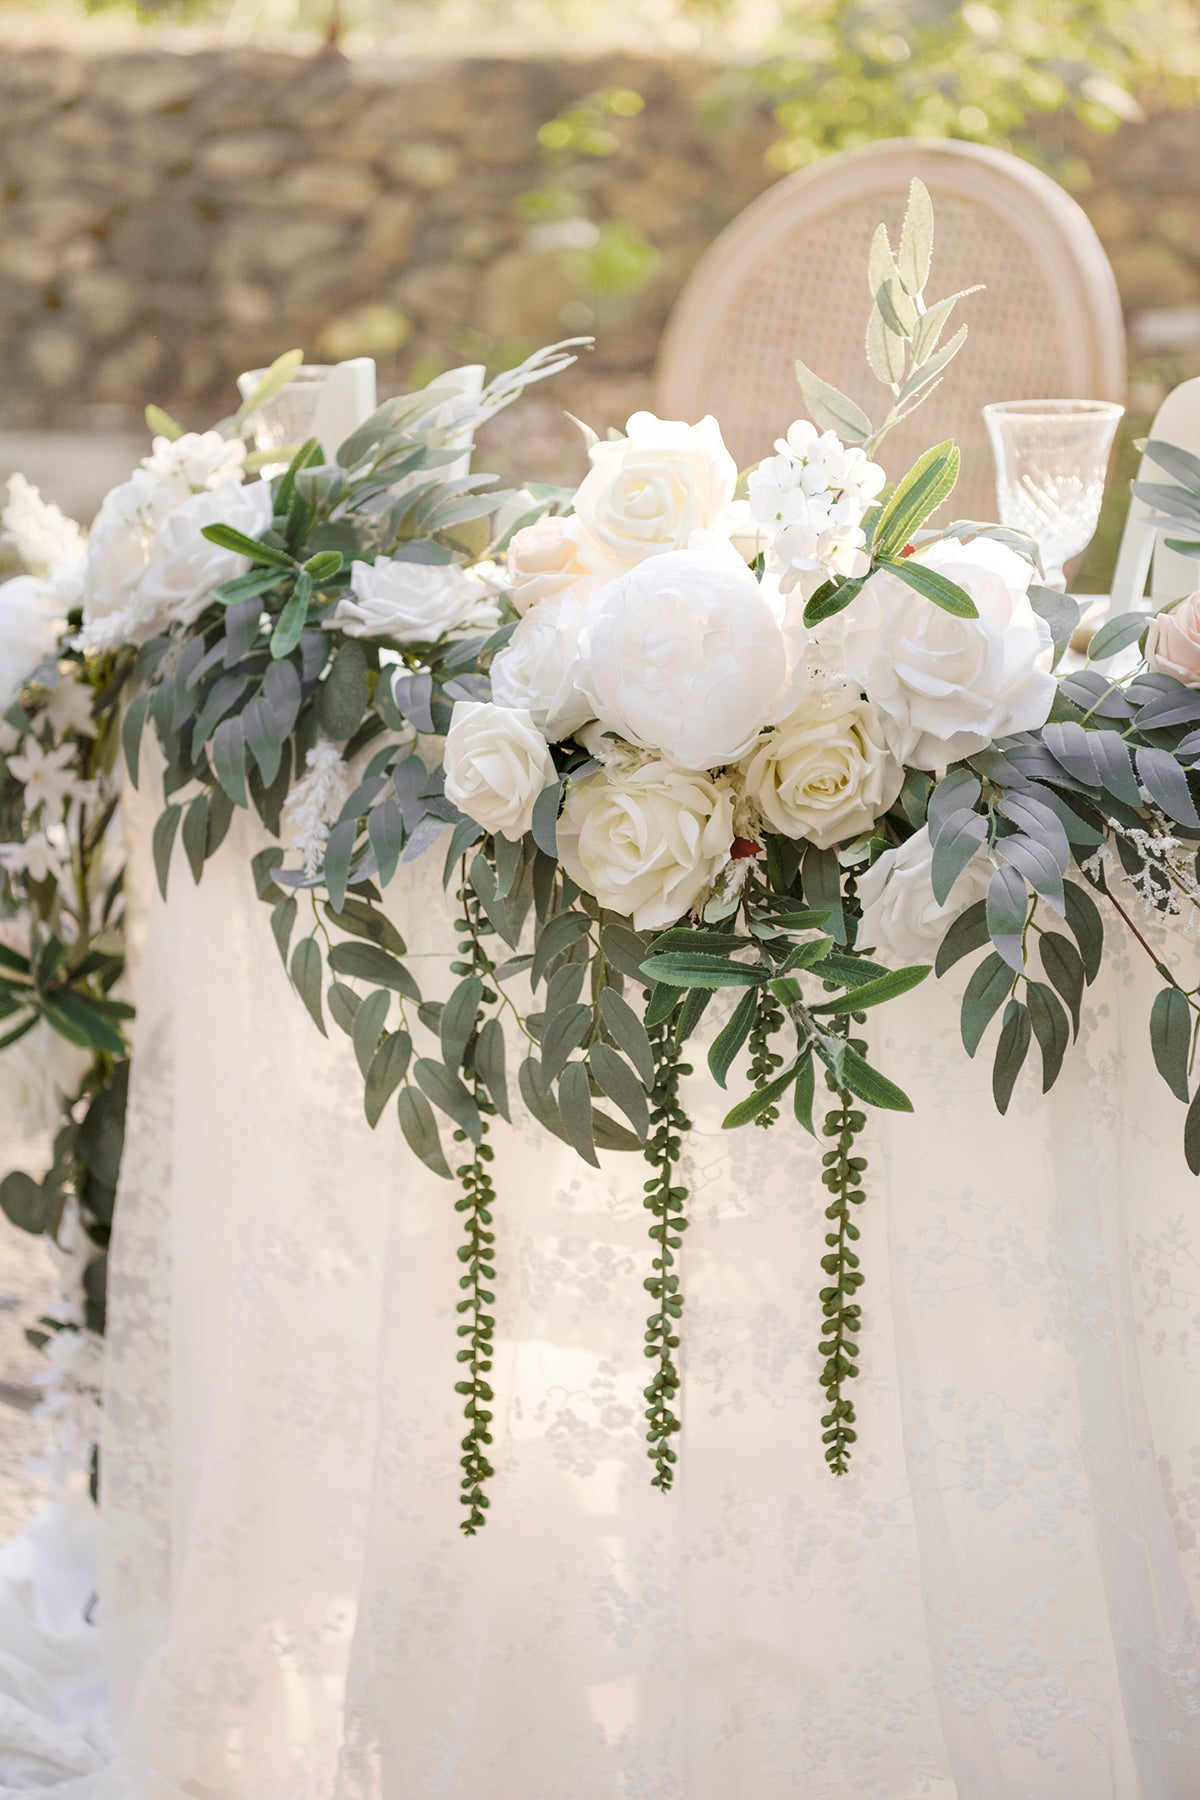 Eucalyptus and Willow Leaf Flower Garland 9FT - White & Sage